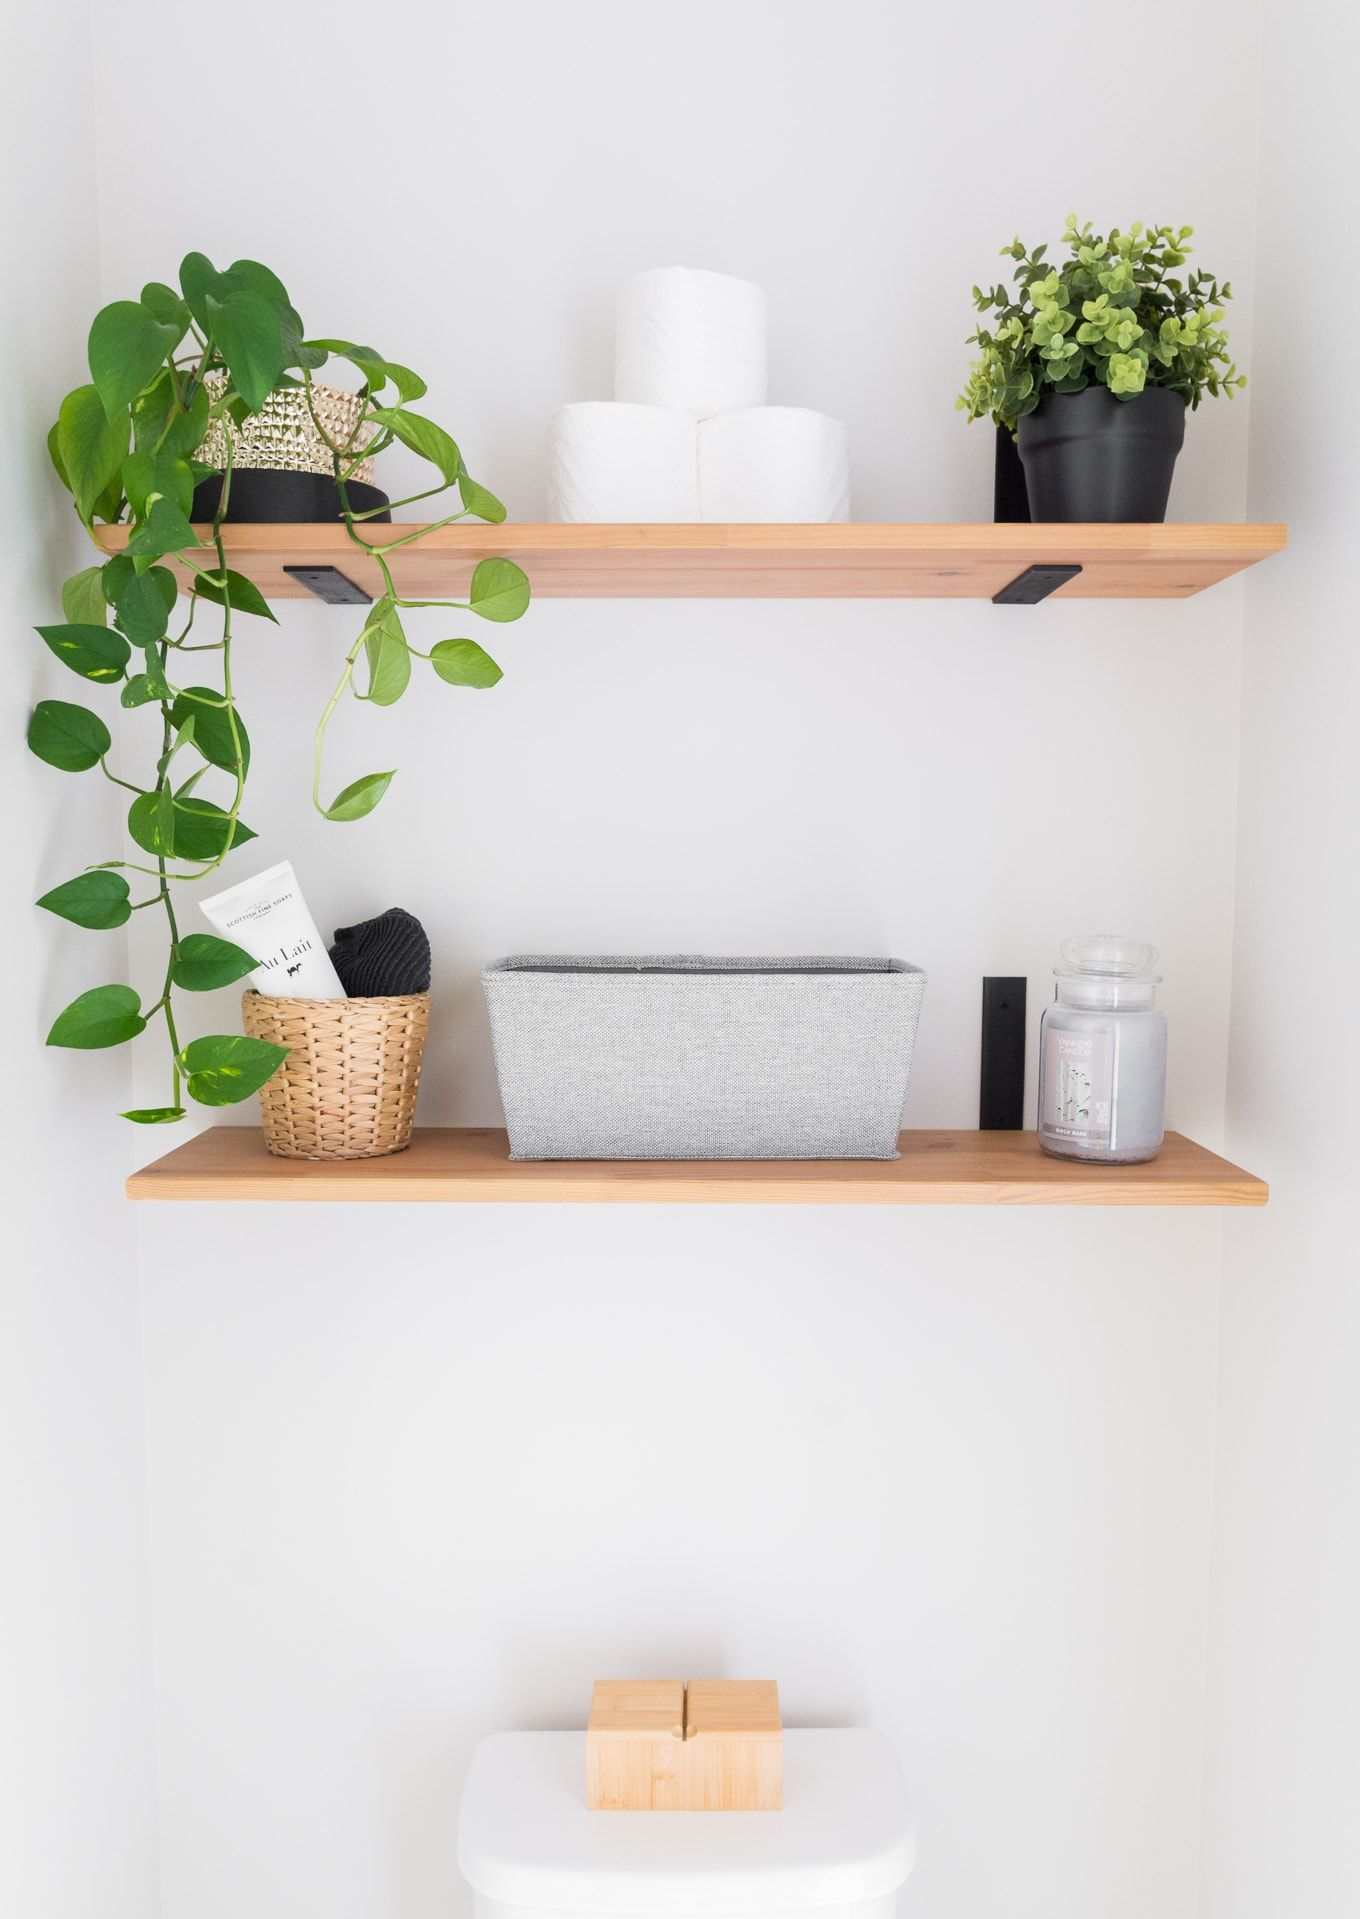 Tiny Monochrome Powder Room With Plants (for Under $100) images